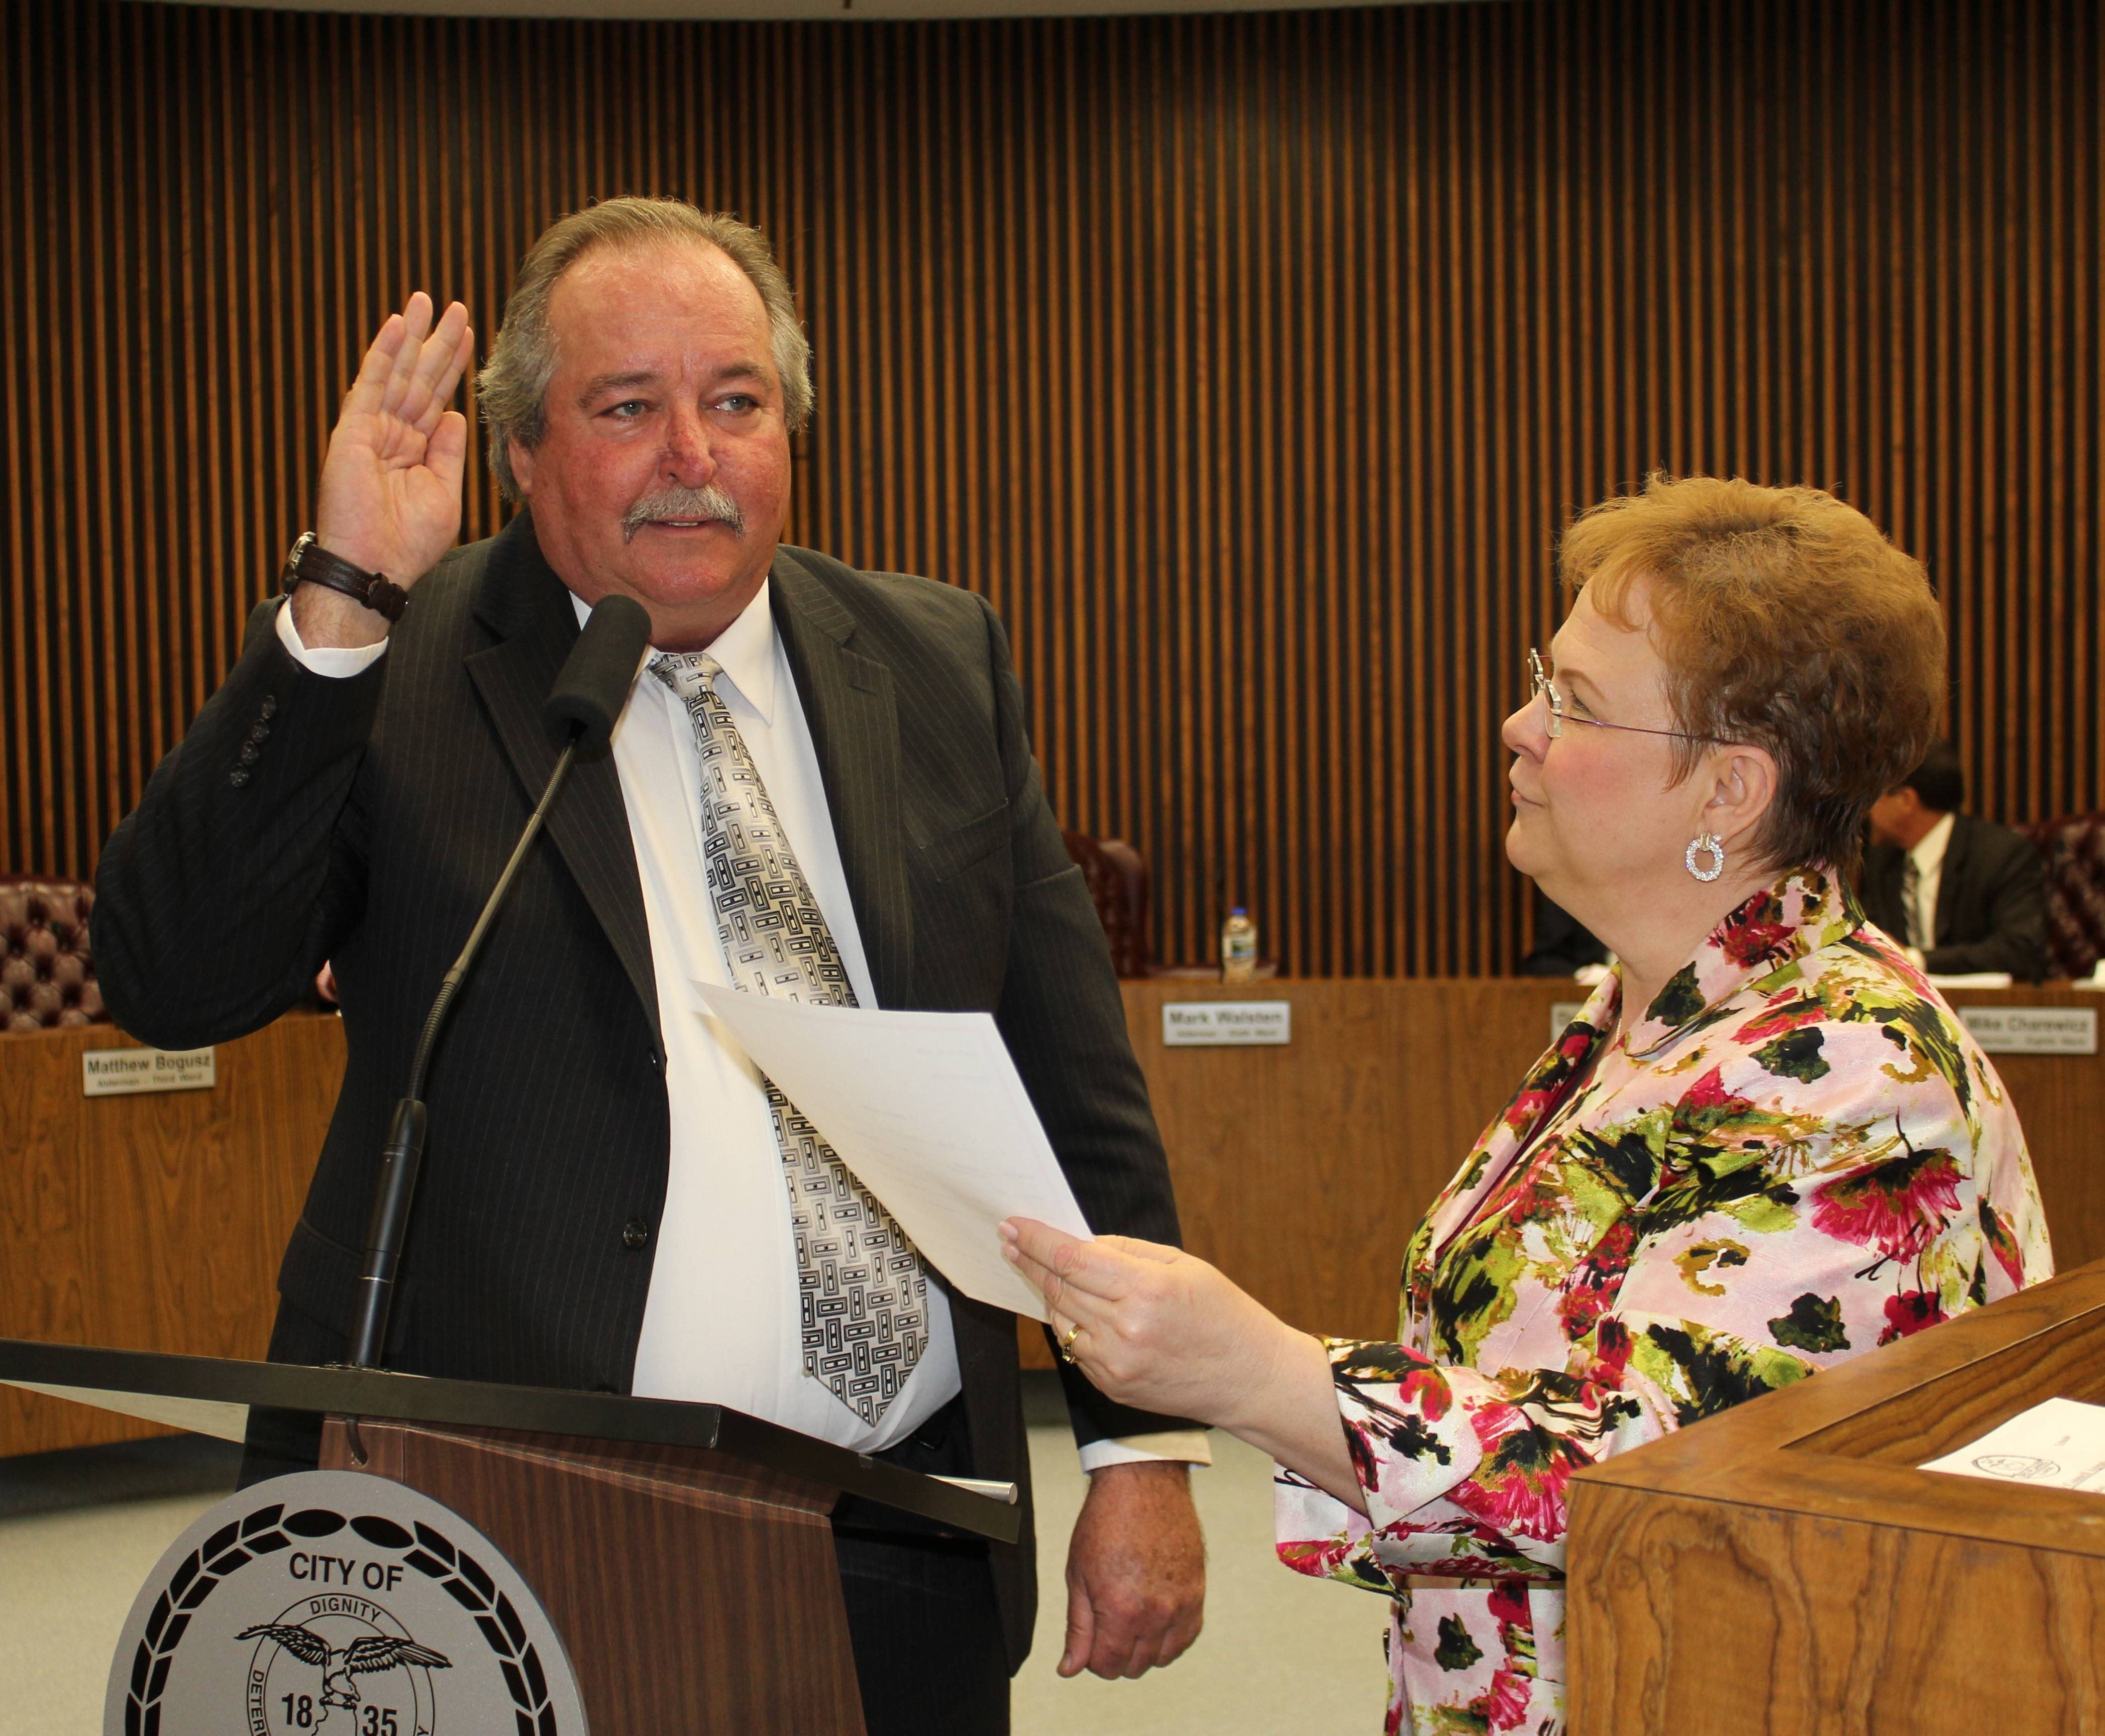 6th Ward Alderman Mark Walsten (left) is sworn in as Acting Mayor of the City of Des Plaines by City Clerk Gloria J. Ludwig (right) at the Monday, April 15, 2013, City Council Meeting at City Hall.